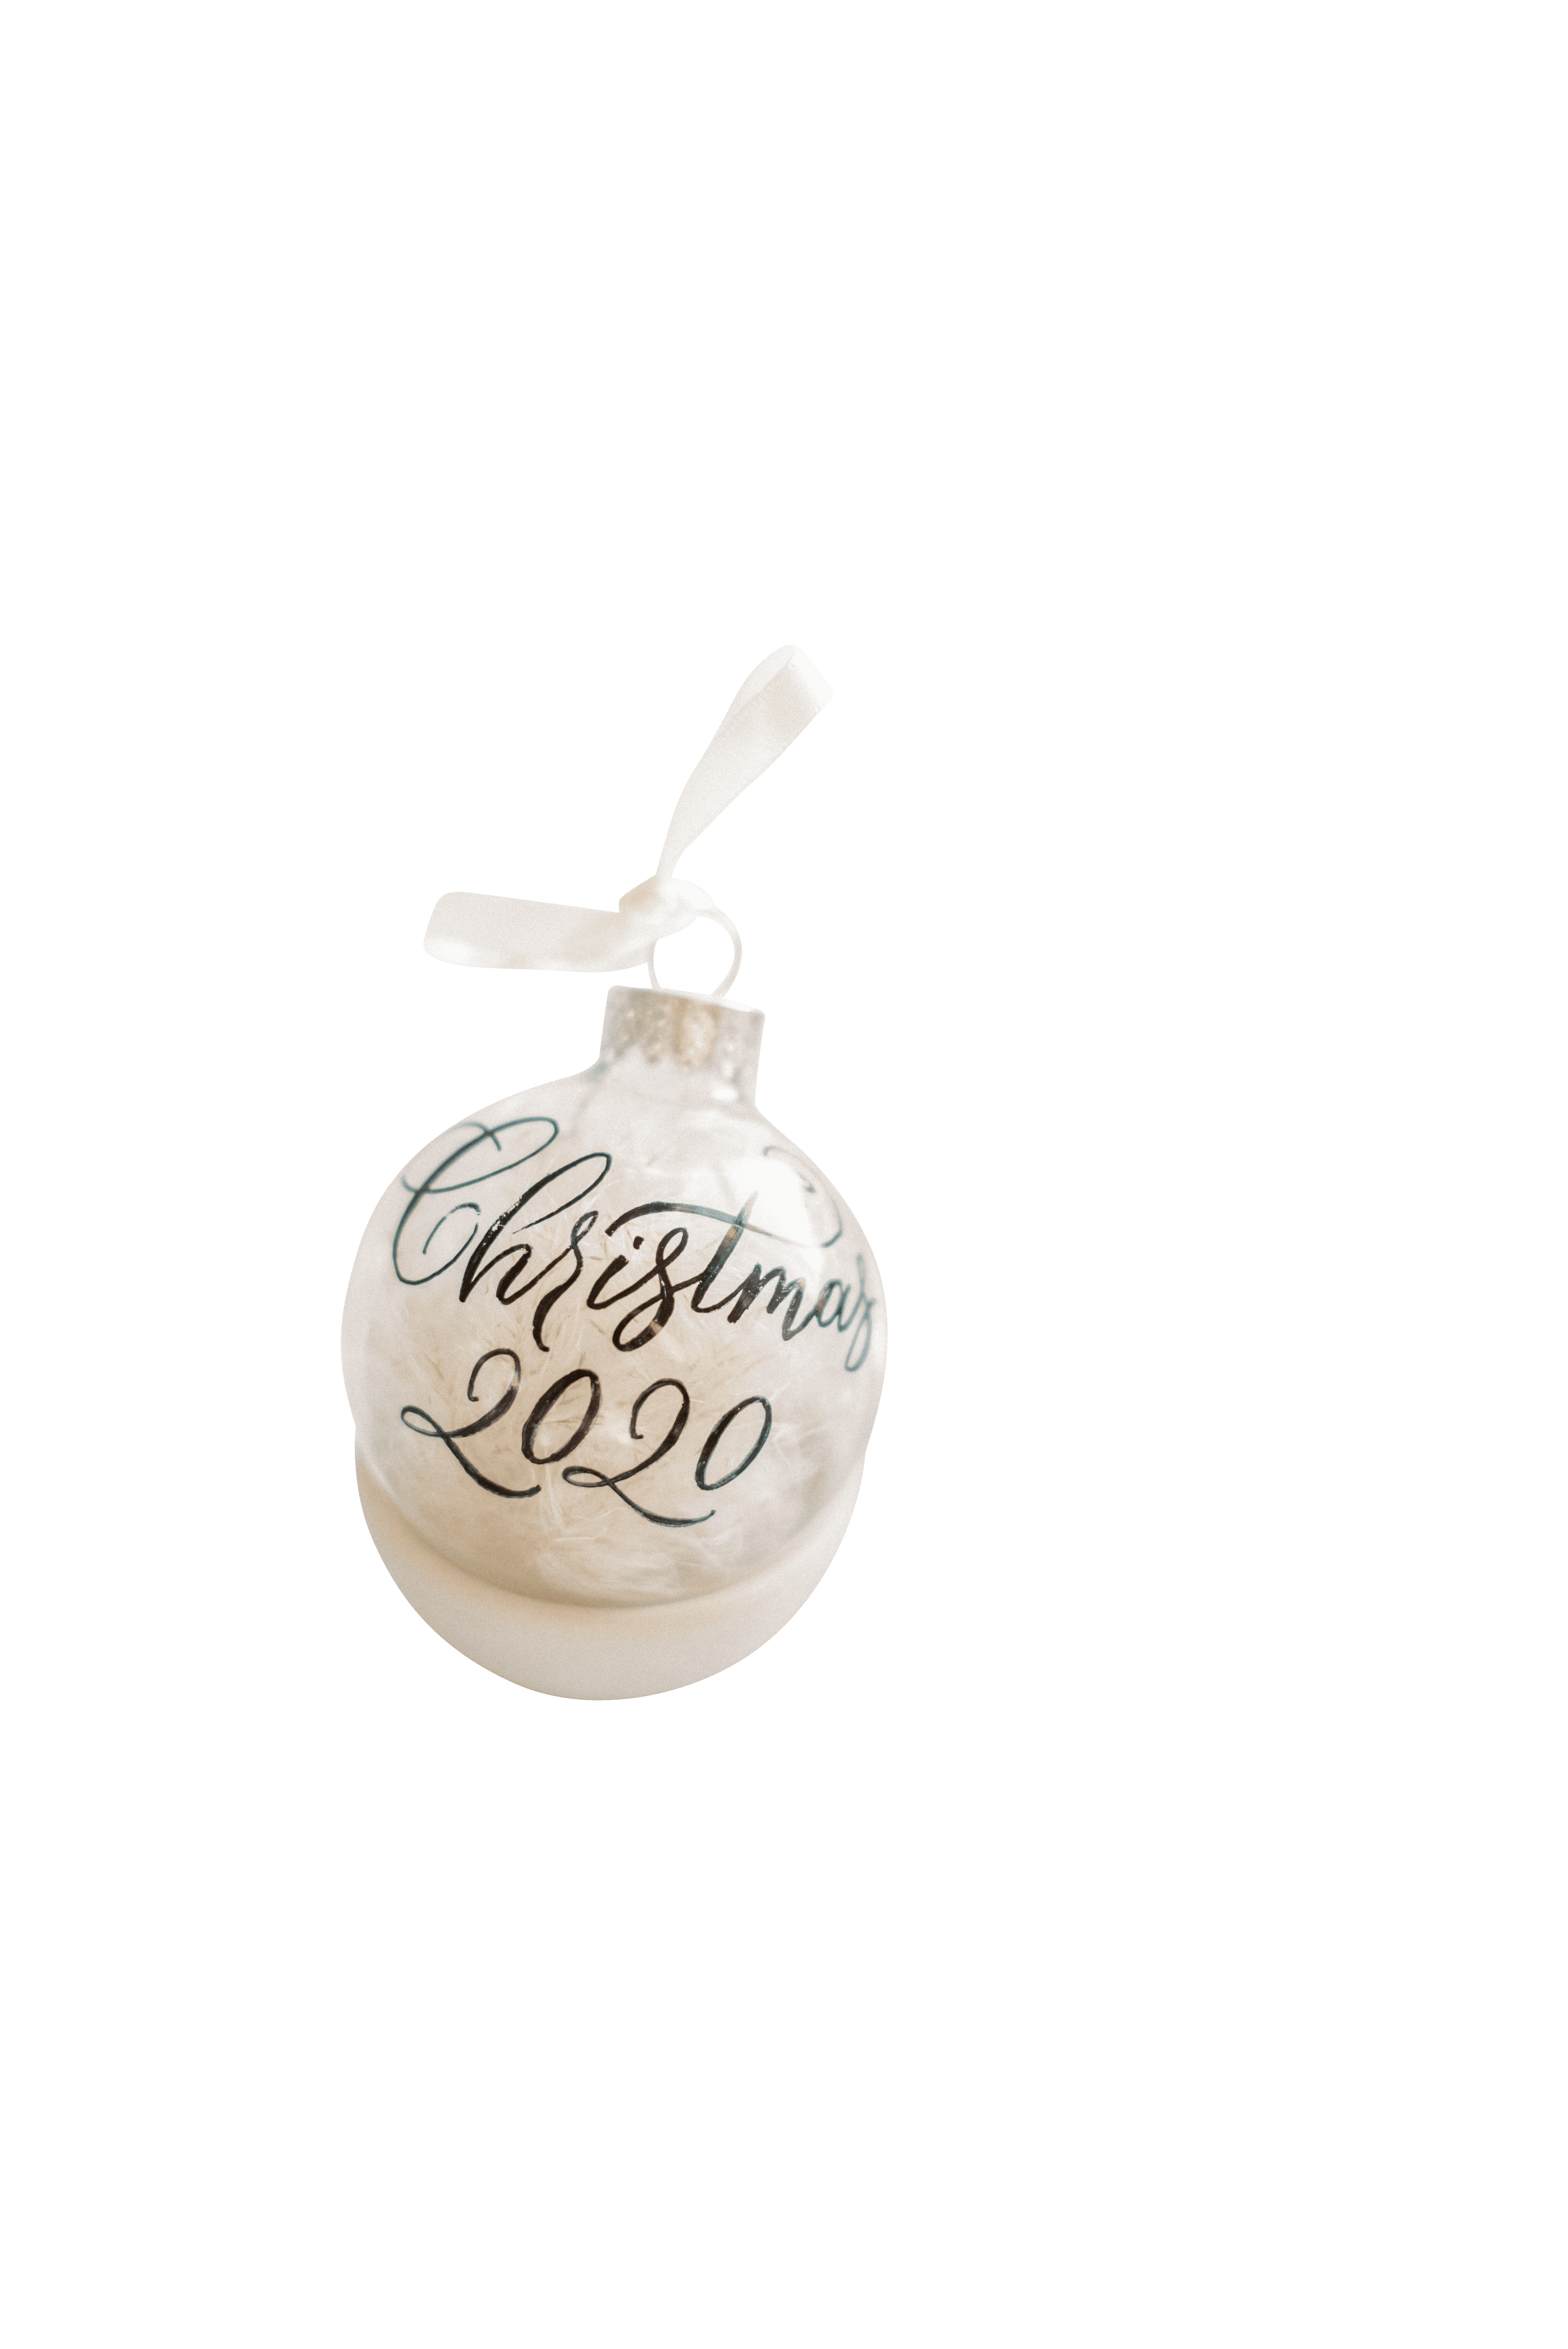 Christmas white ball 2020 transparent background.png